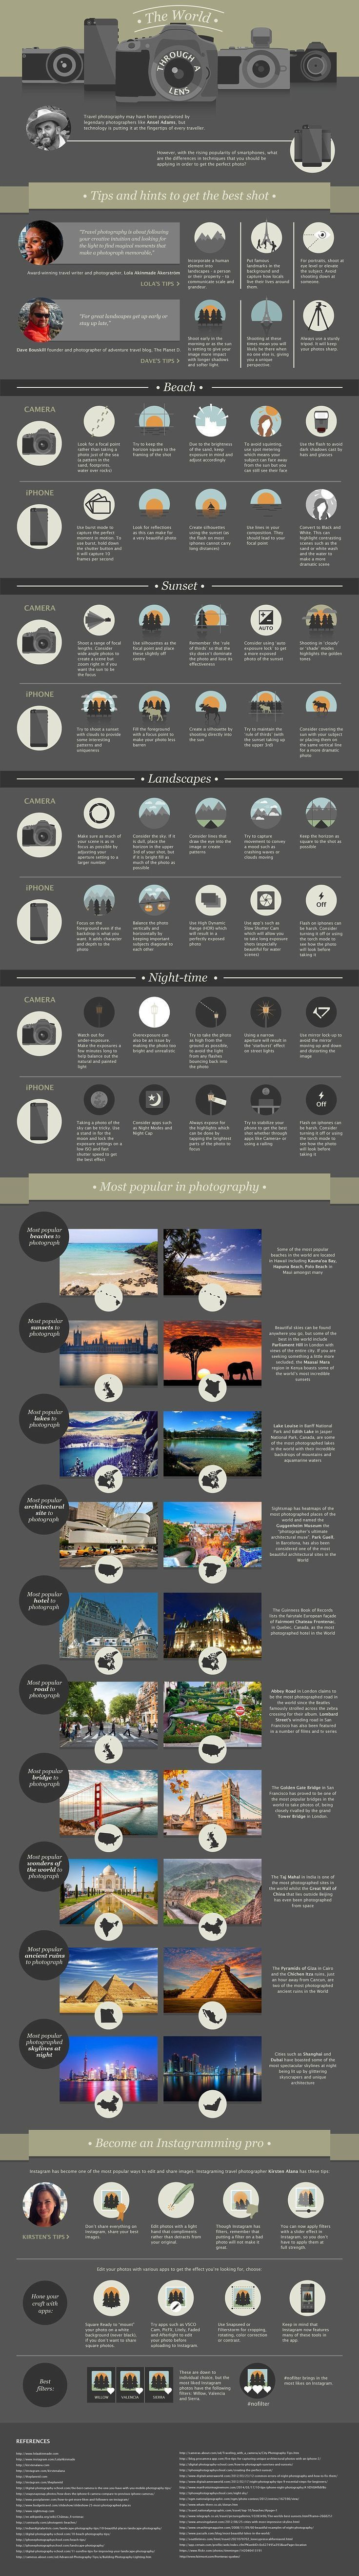 Fairmont Hotels' infographic guide to shooting holiday photos plus how to Instagram like a pro | Daily Mail Online